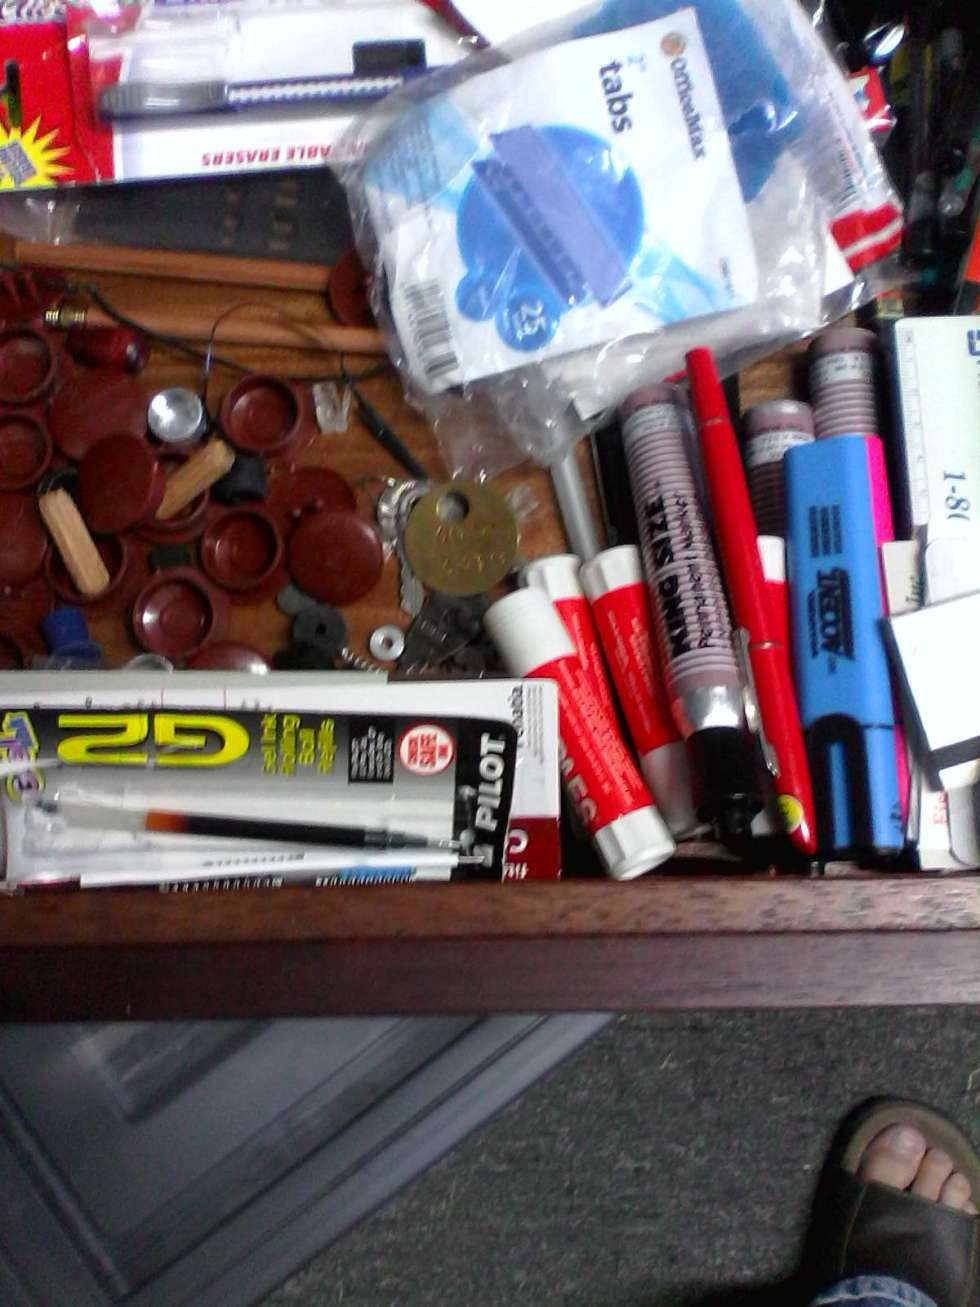 The Drawer image